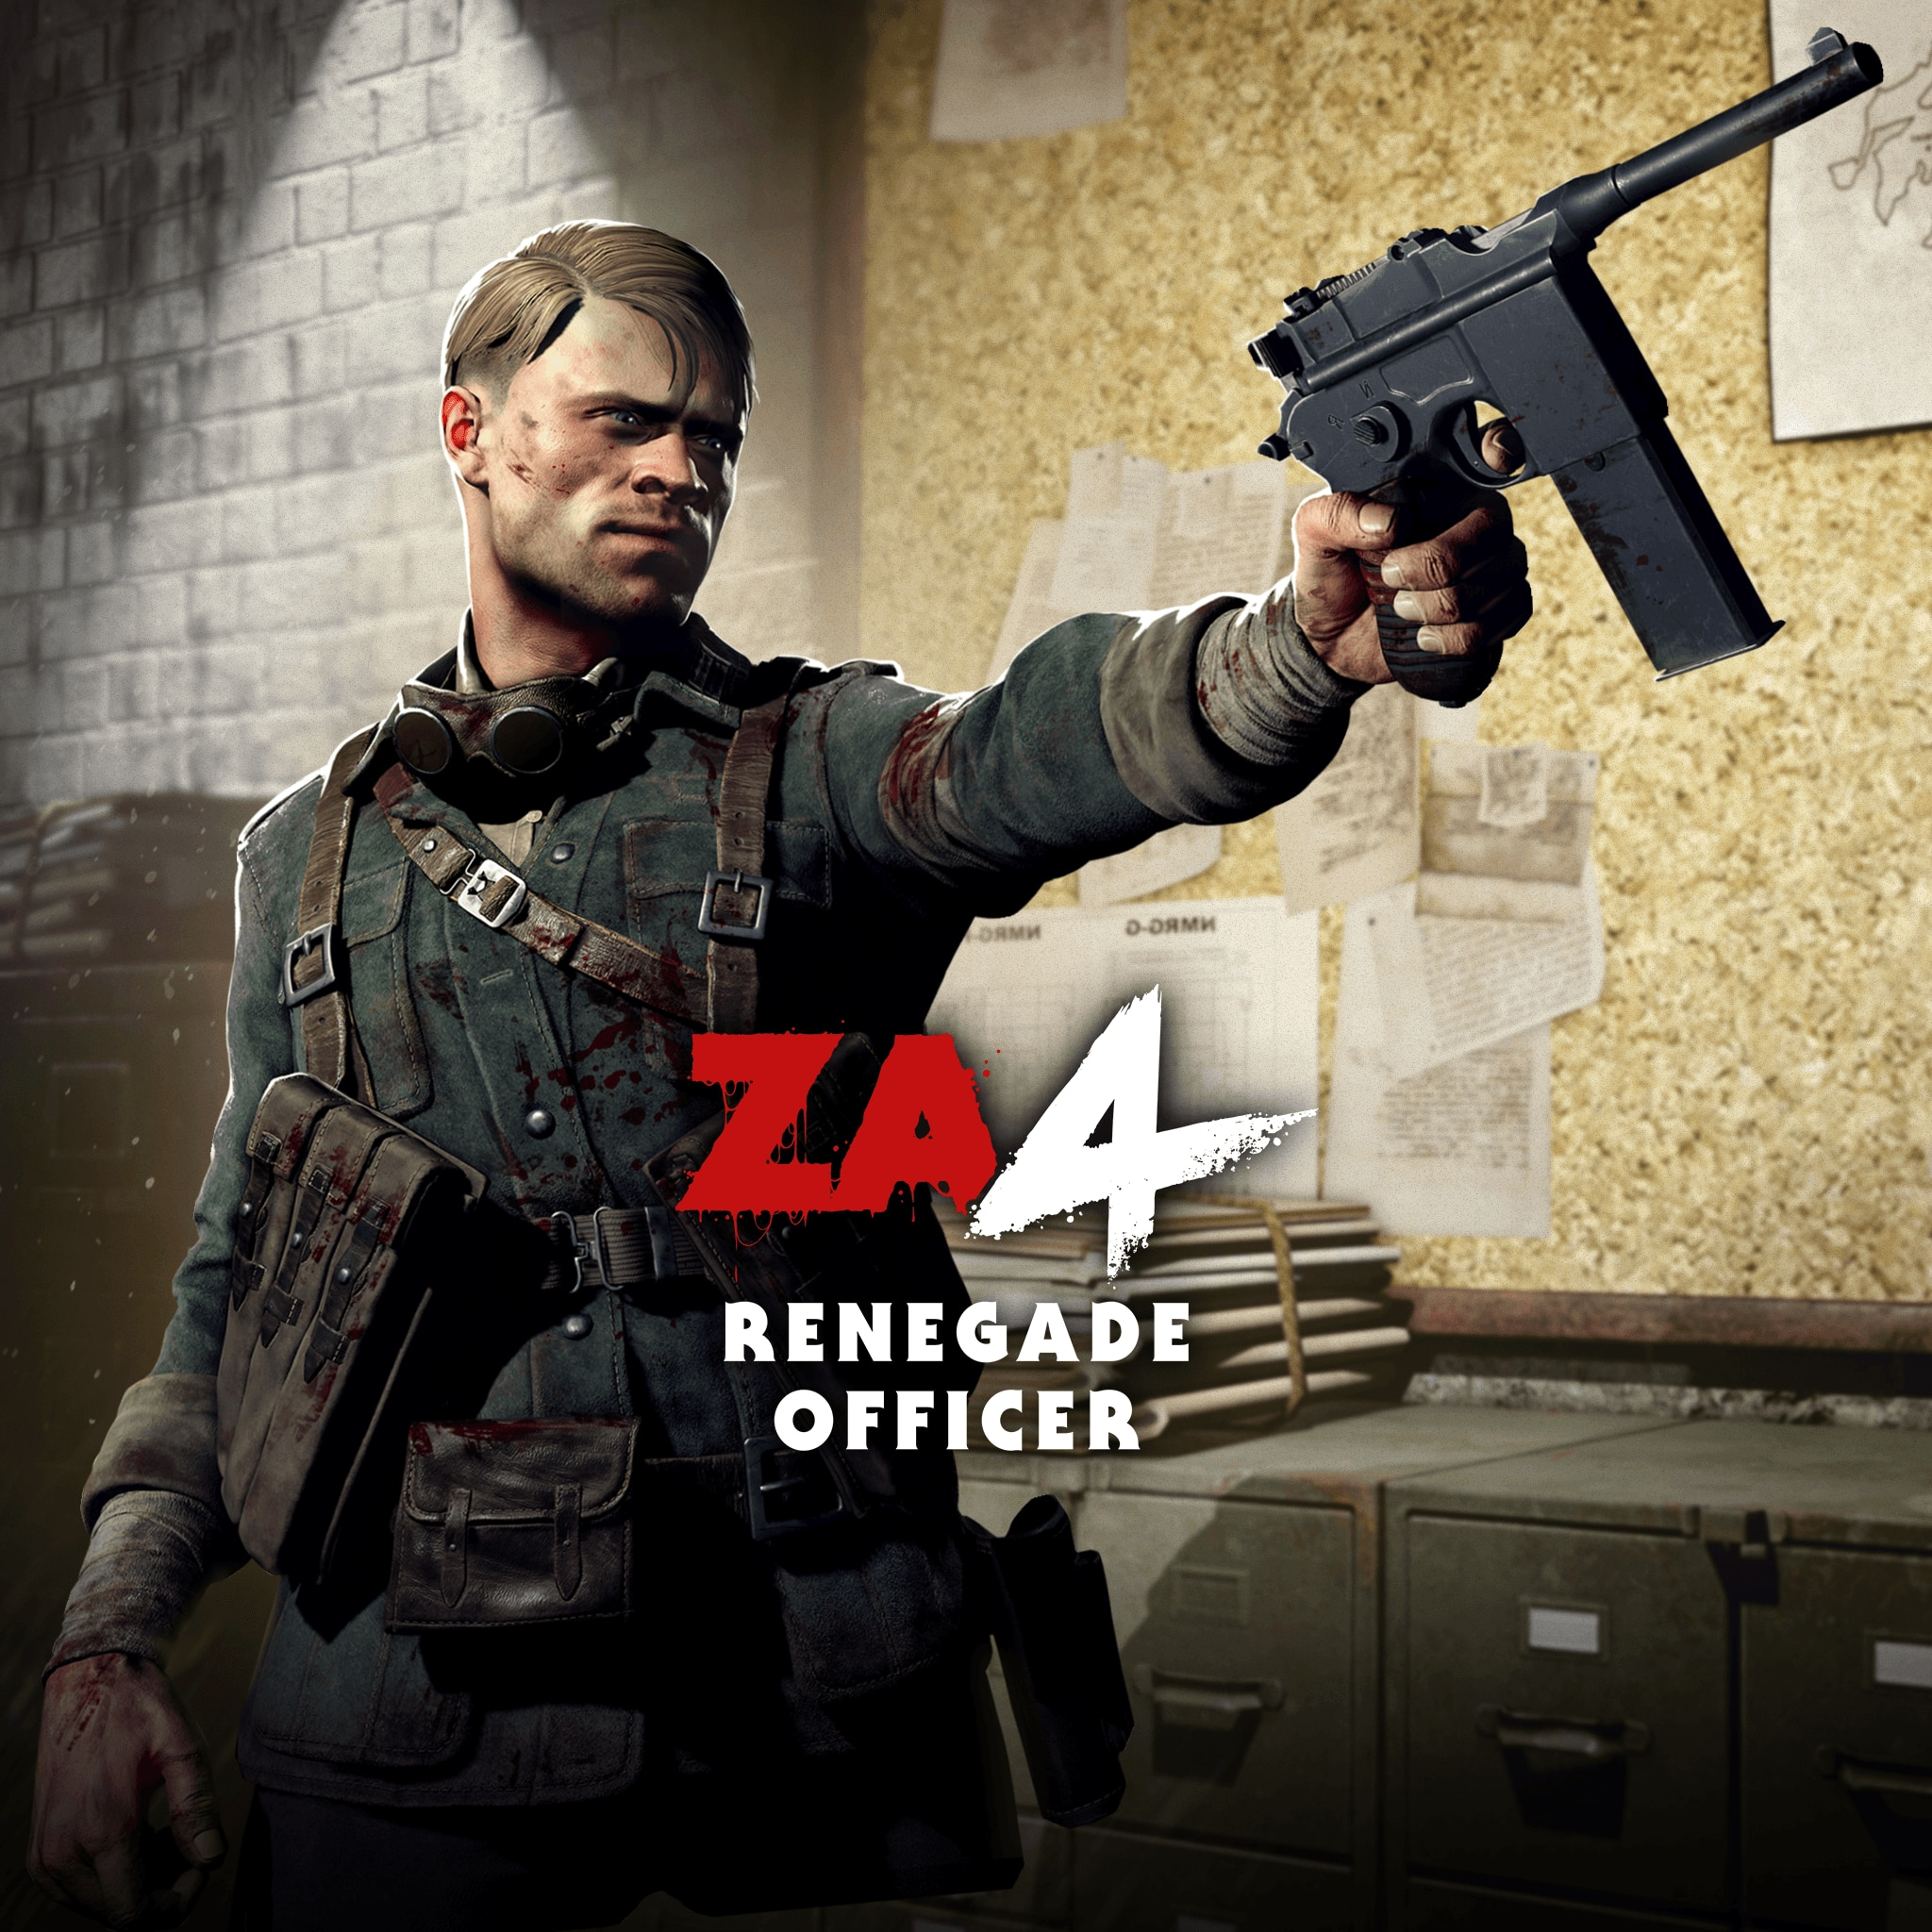 Zombie Army 4: Renegade Officer Character